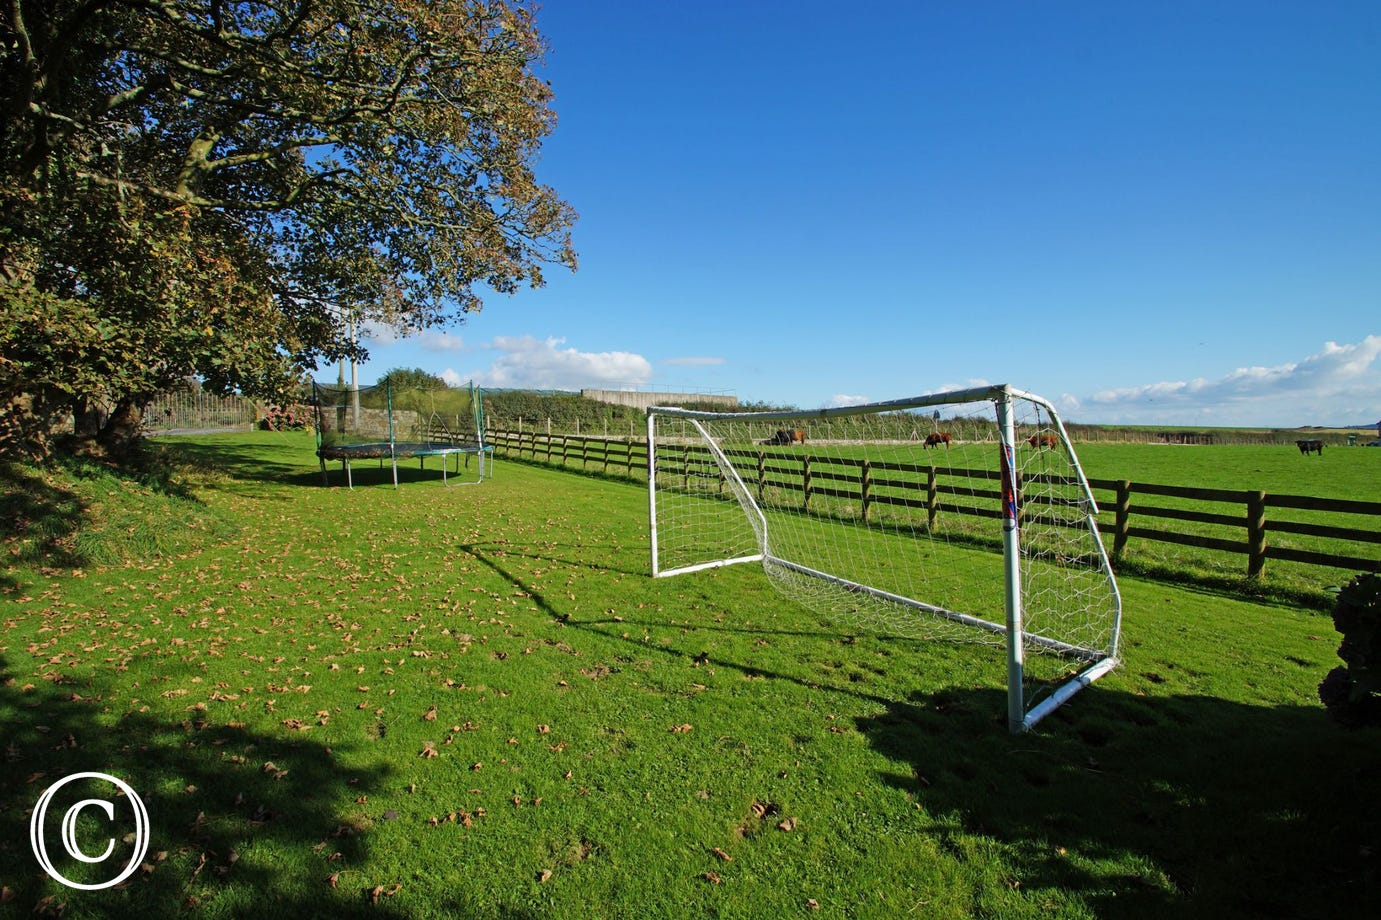 North wales self catering cottages: football goal and trampoline included